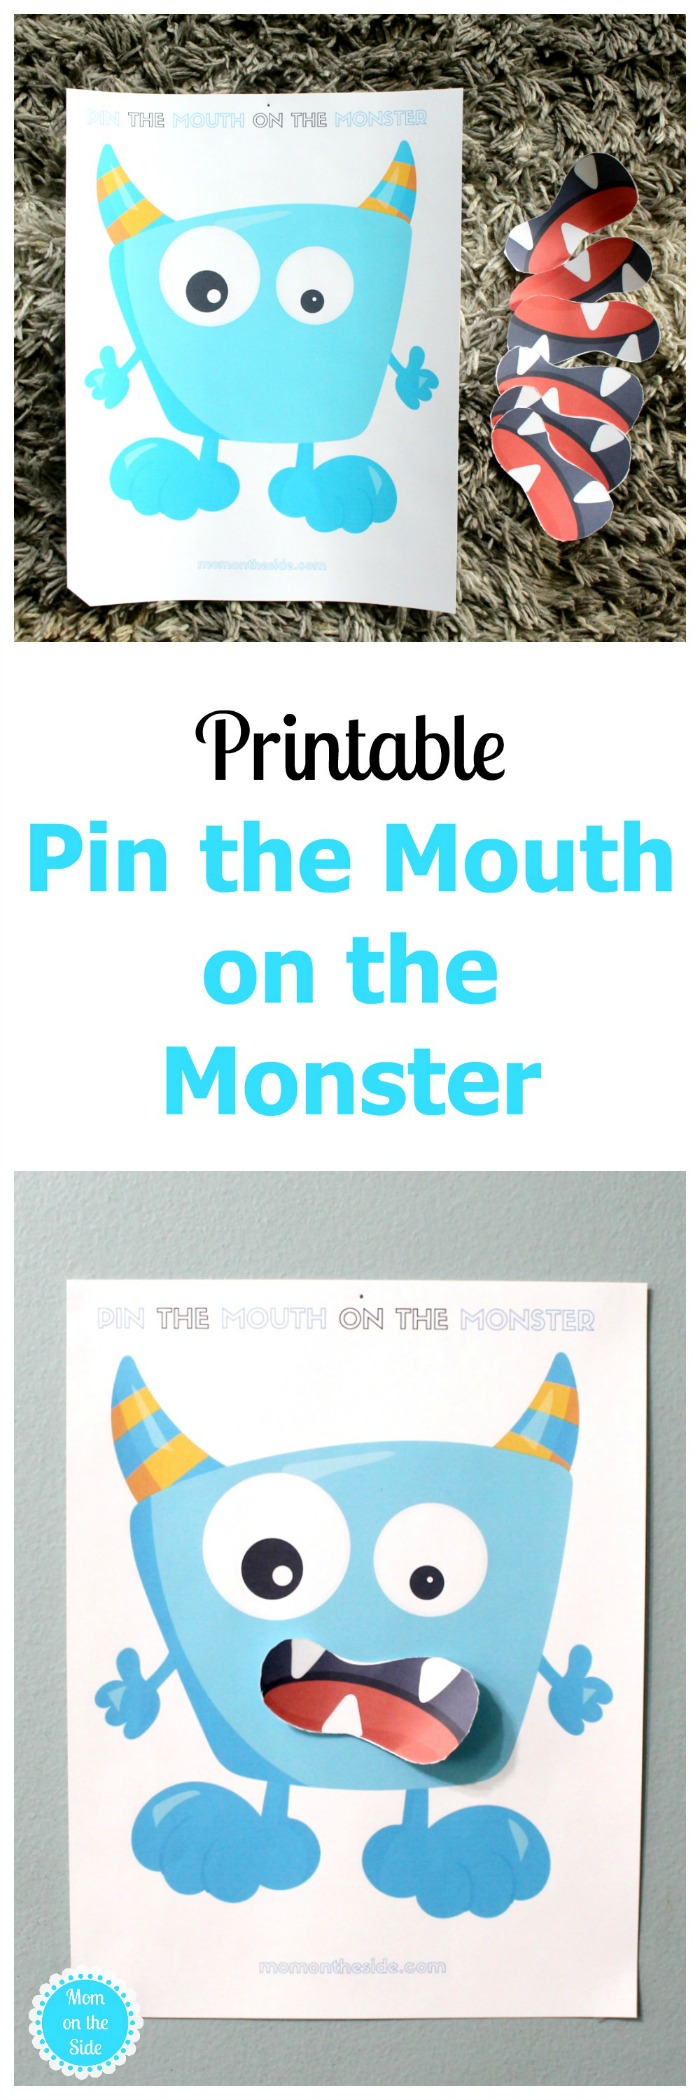 Free Printable Halloween Game: Pin the Mouth on the Monster